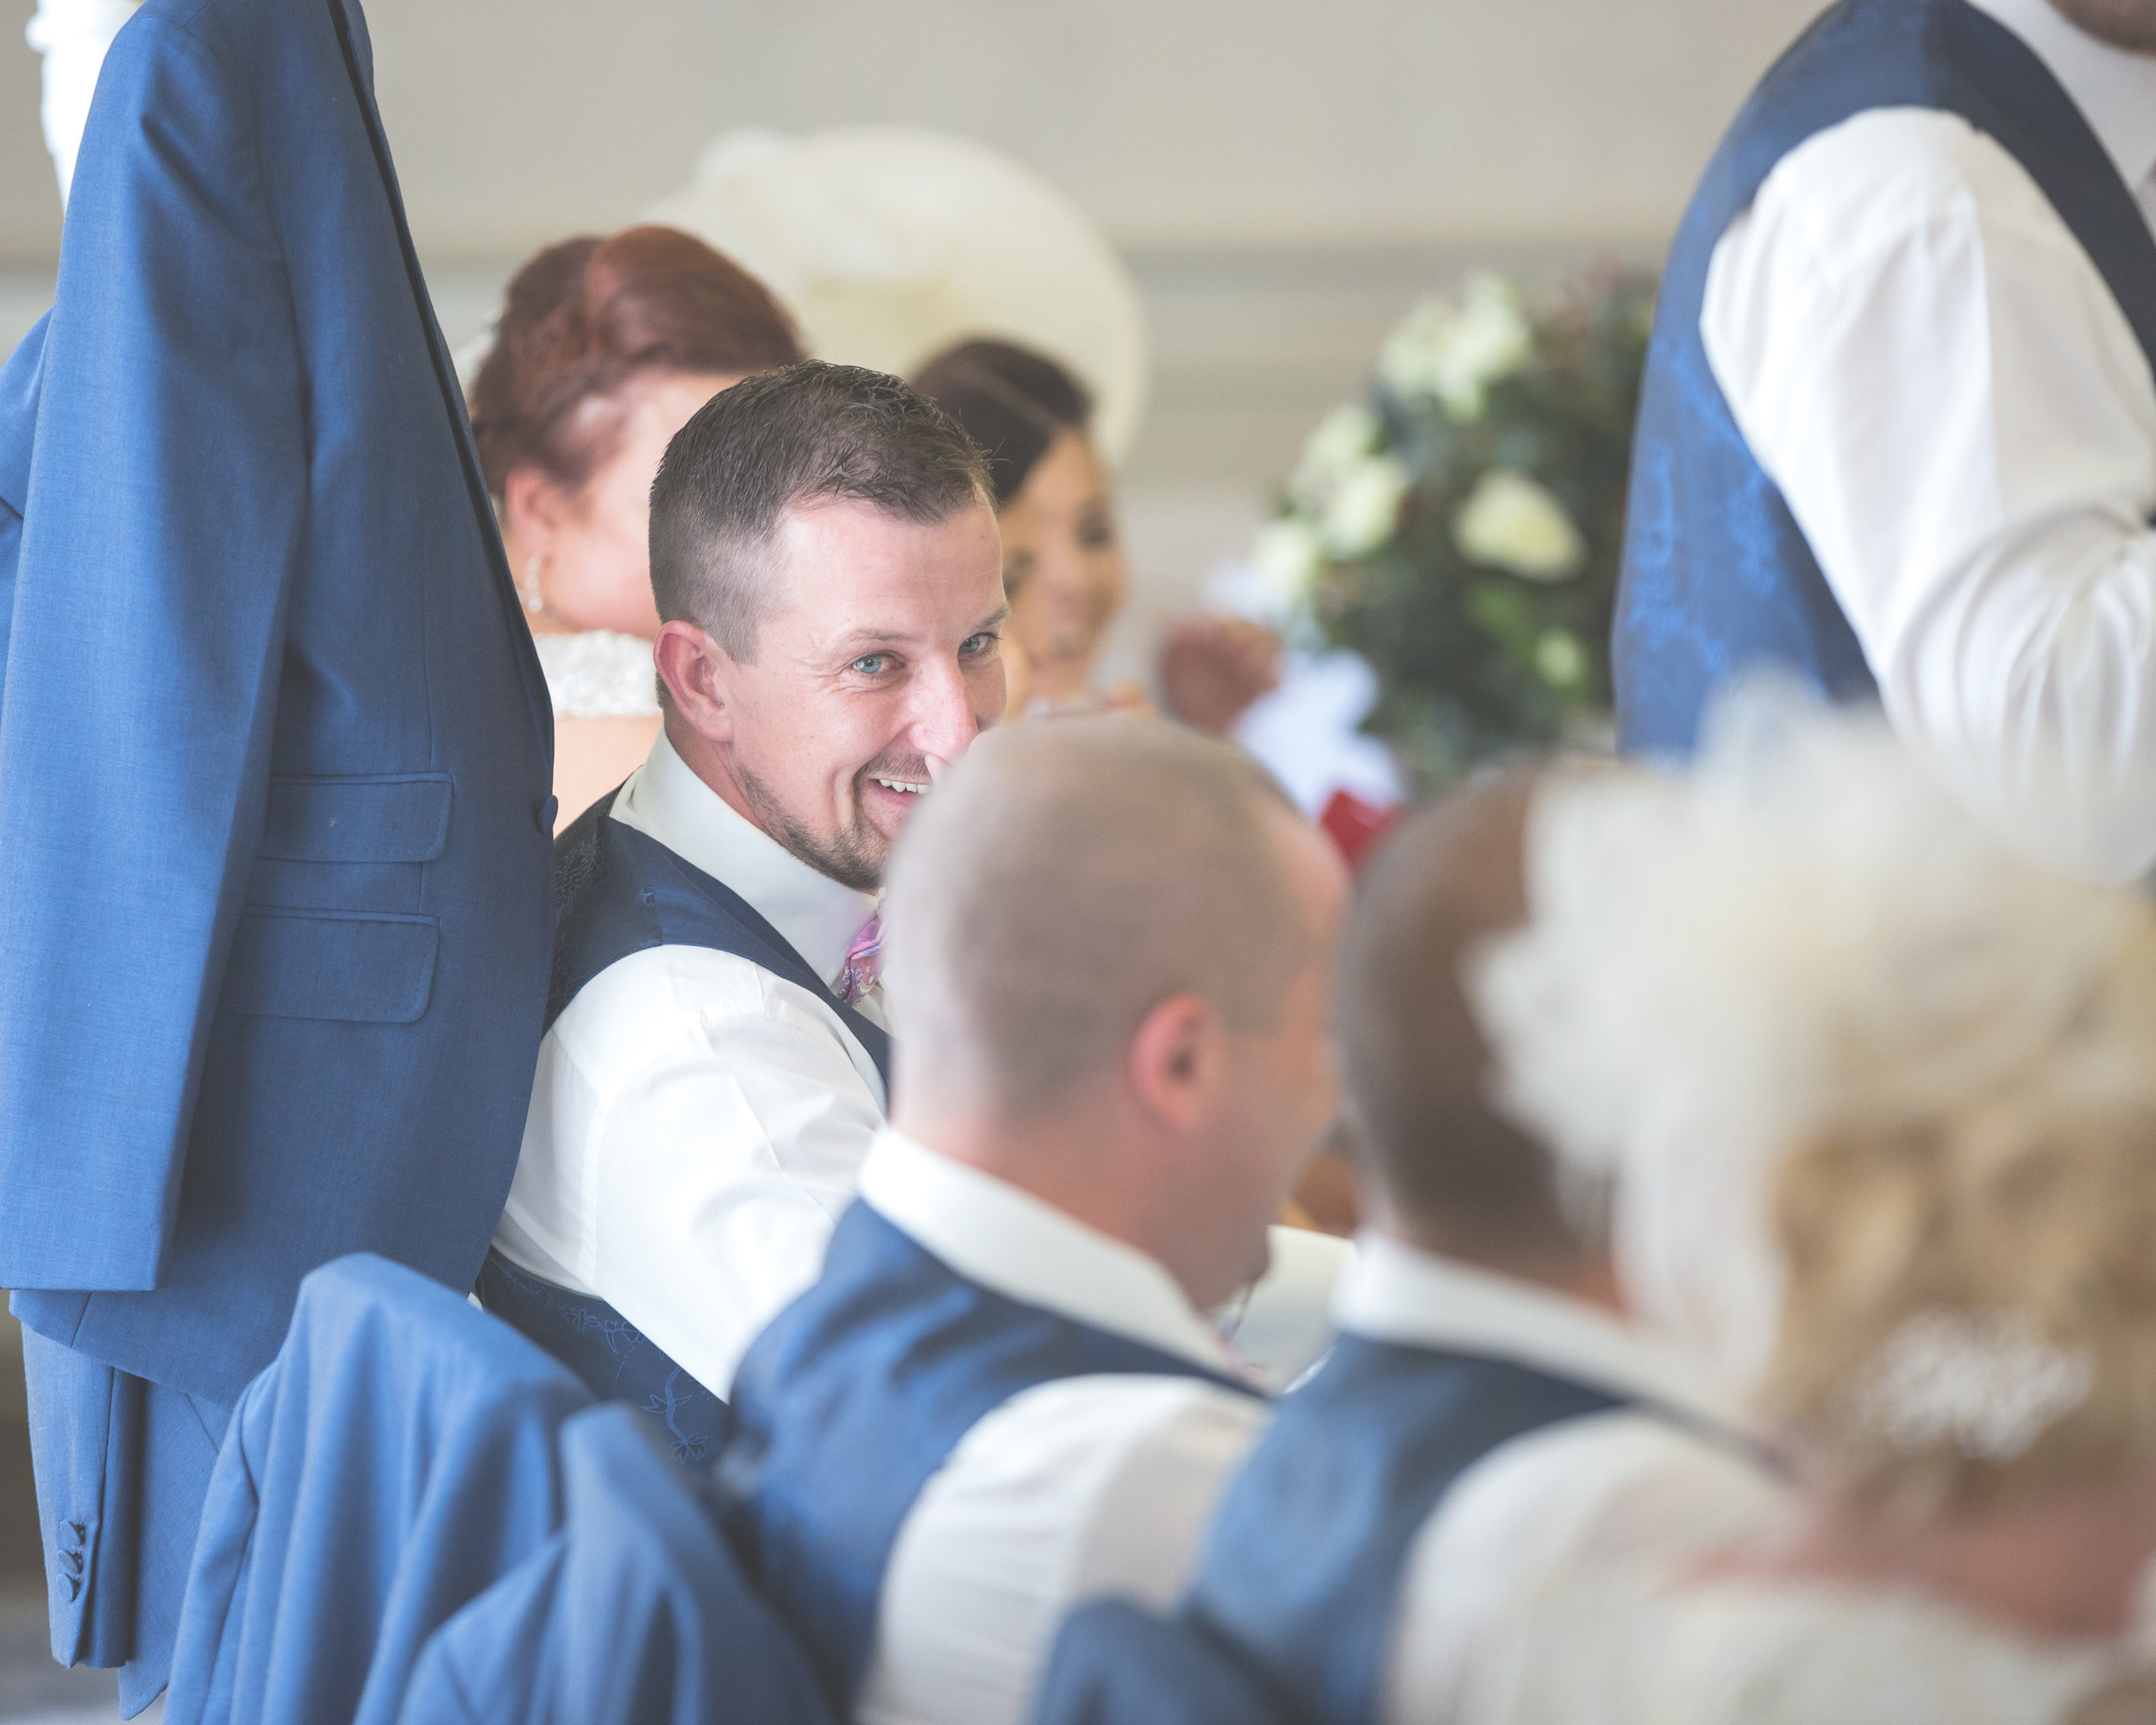 Antoinette & Stephen - Speeches | Brian McEwan Photography | Wedding Photographer Northern Ireland 94.jpg